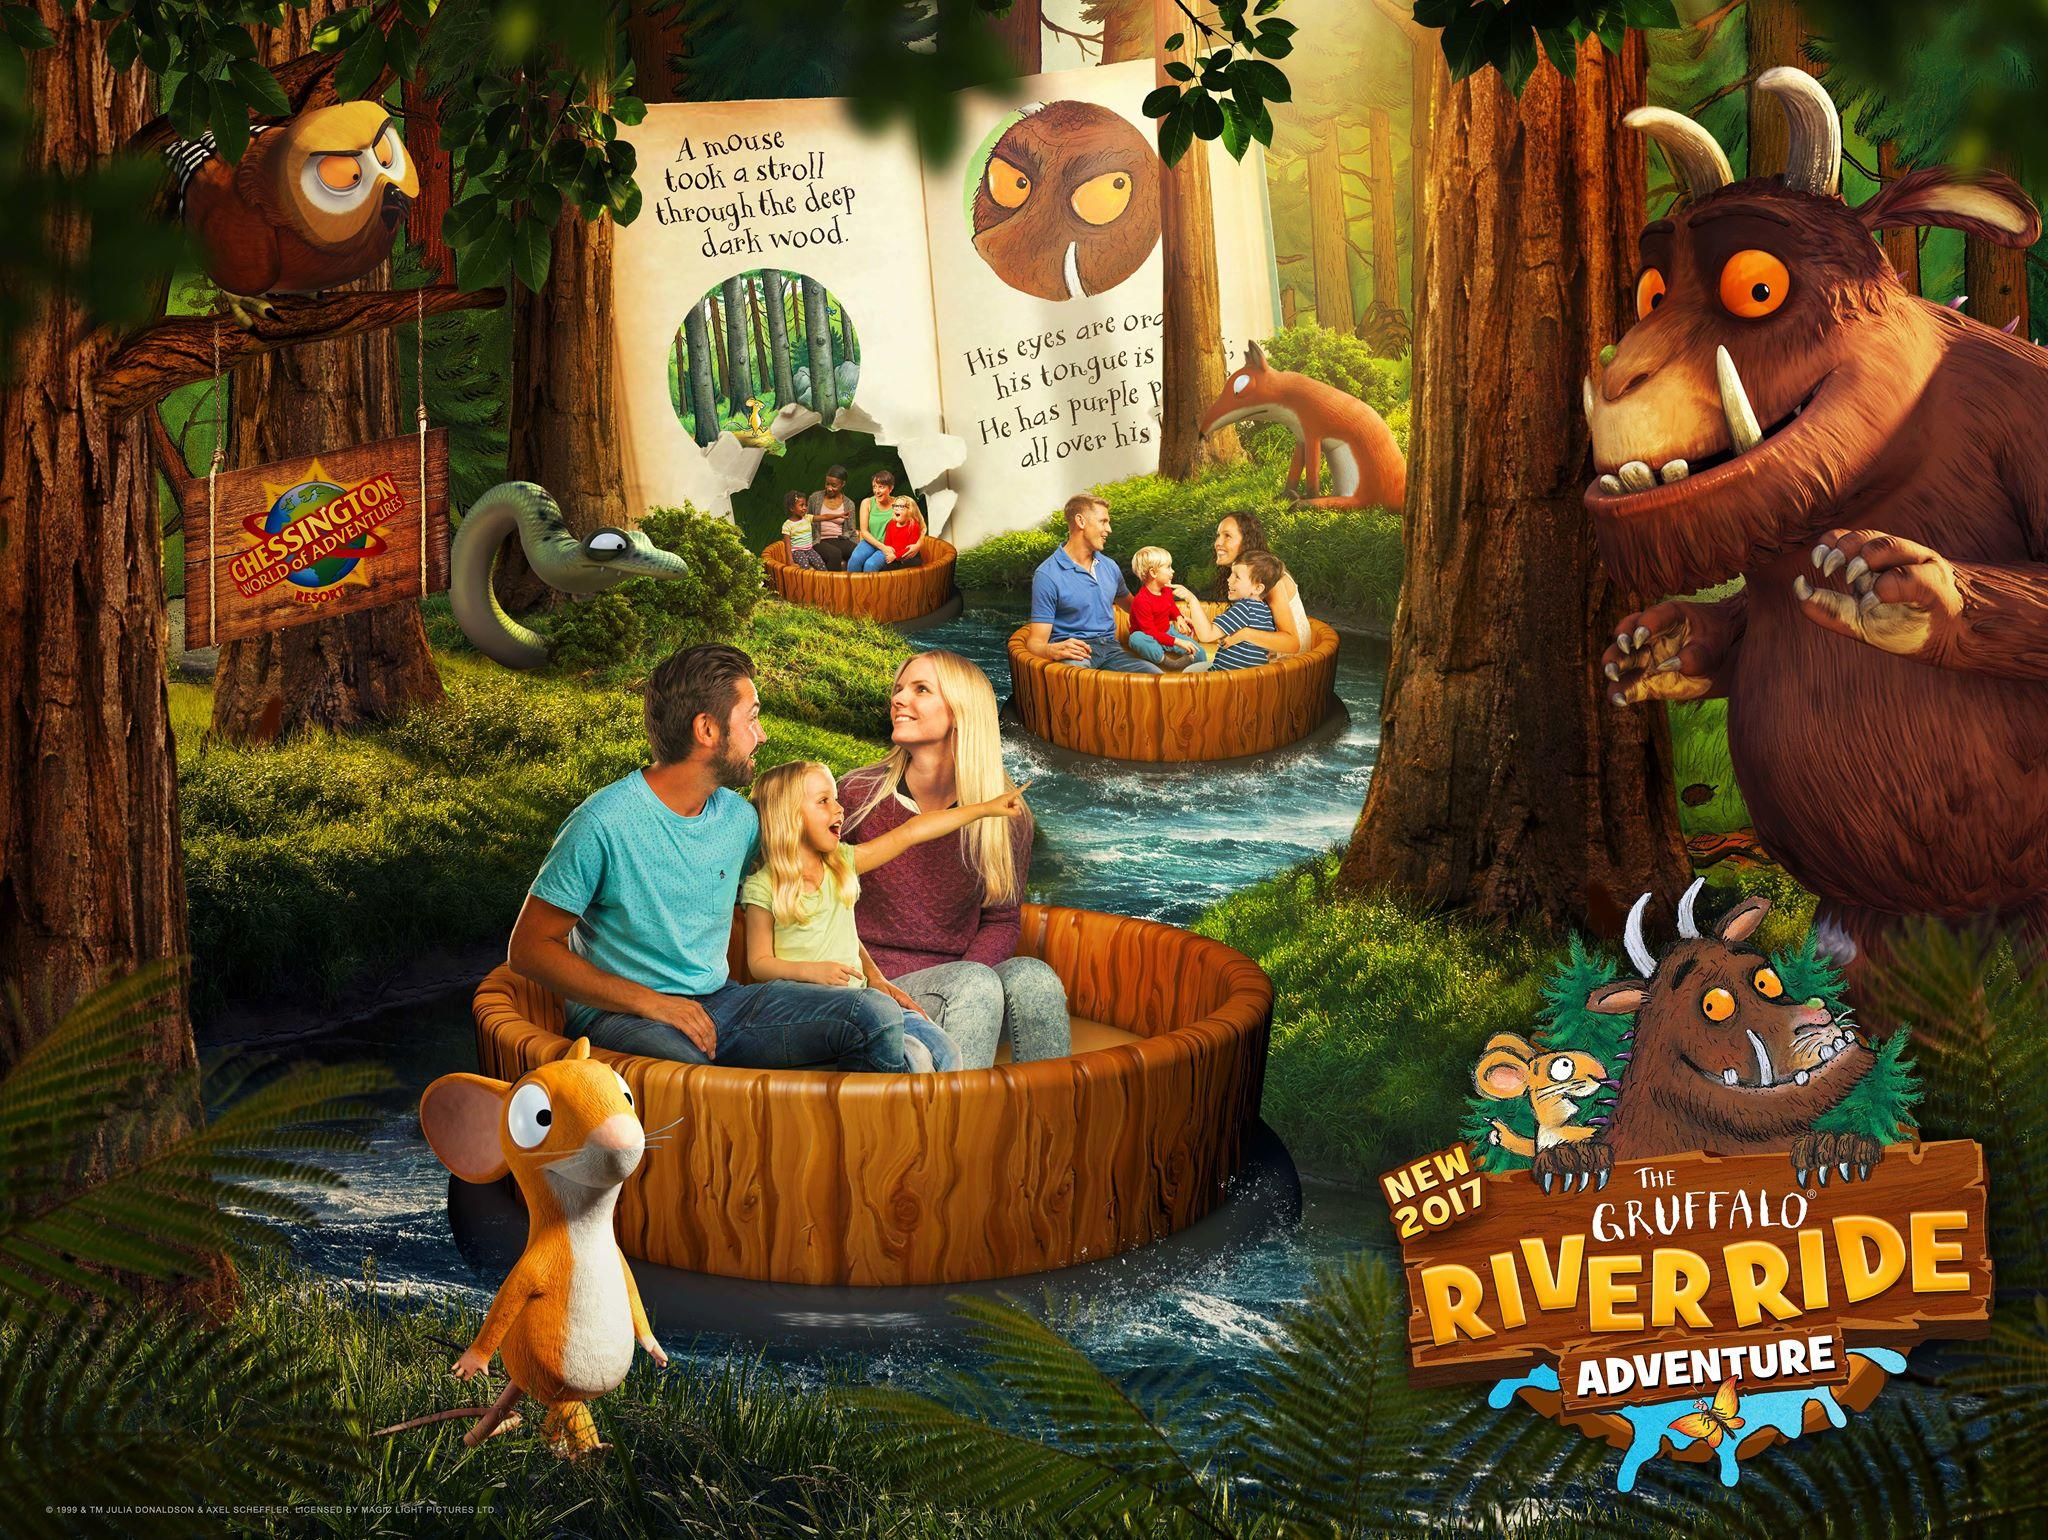 Inside the Gruffalo River Ride Adventure